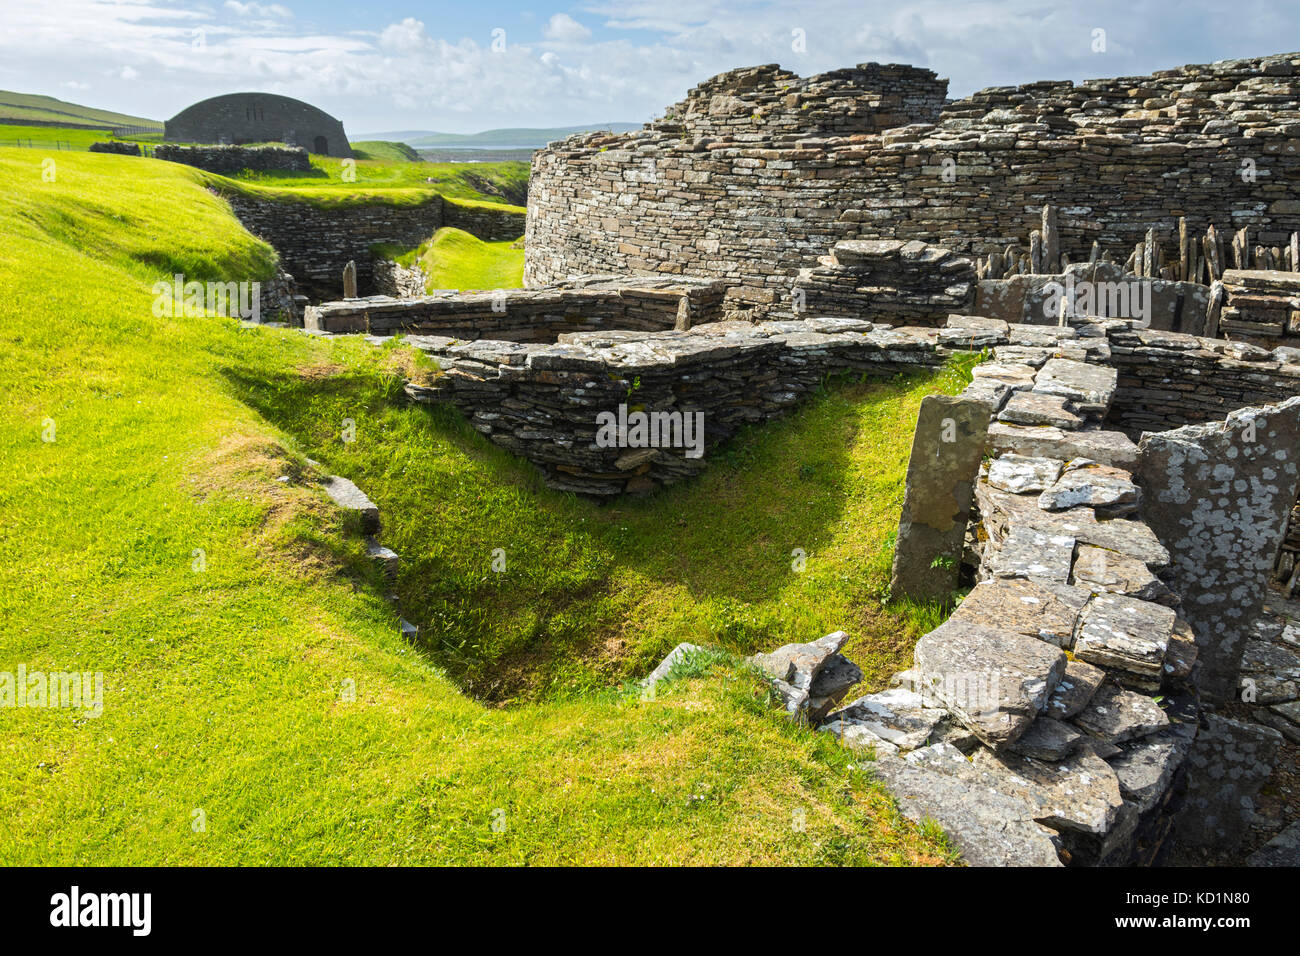 Midhowe Broch on the island of Rousay, Orkney Islands, Scotland, UK. - Stock Image